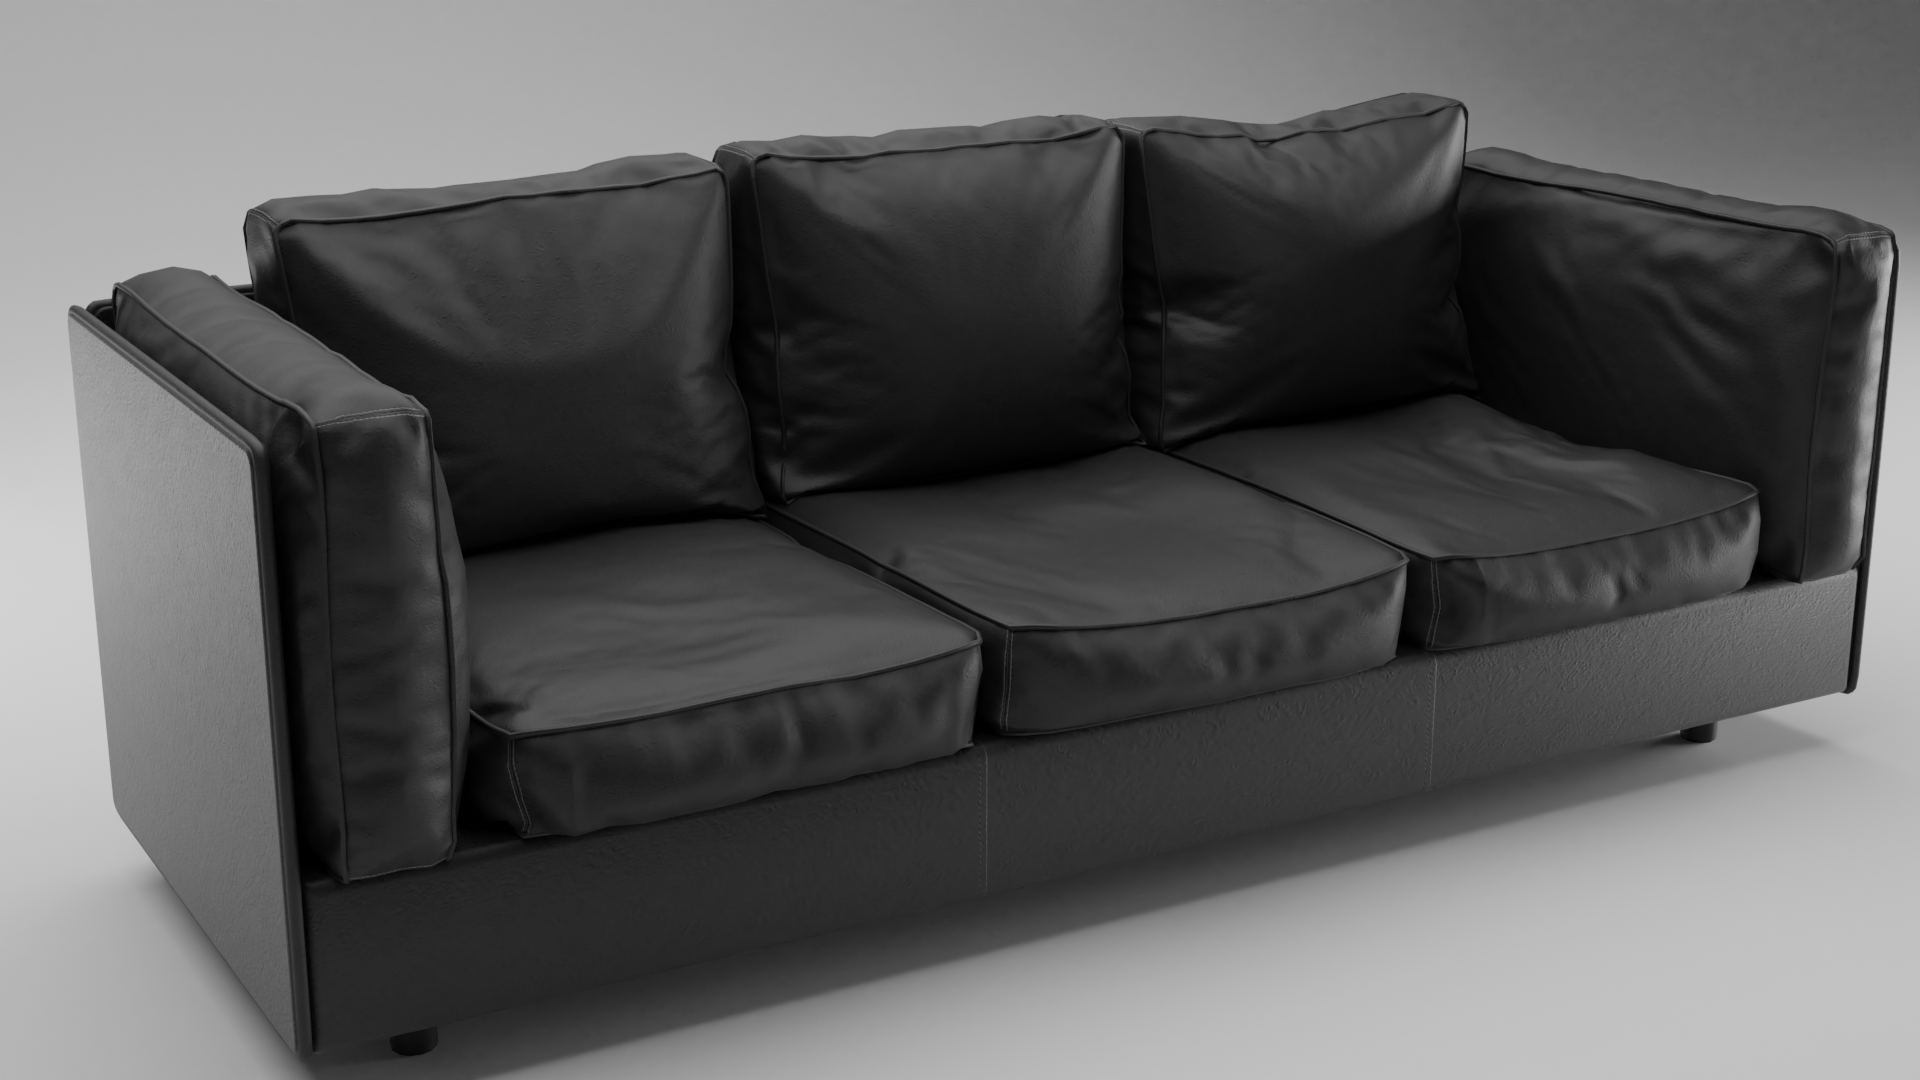 Leather Sofa preview image 1